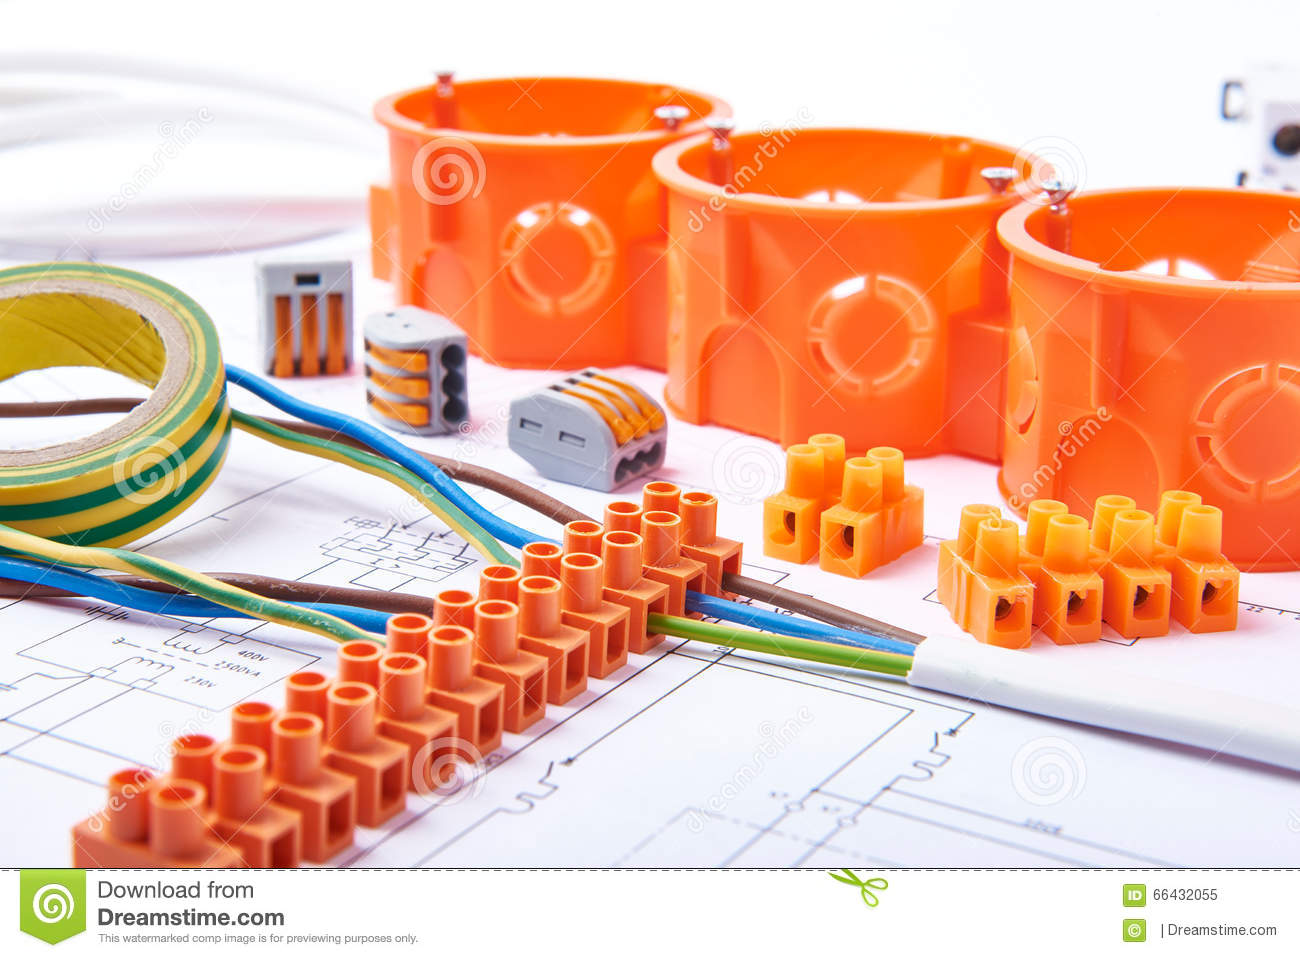 Electrical Connectors With Wires Junction Box And Different Wiring Materials Used For Jobs In Electricity